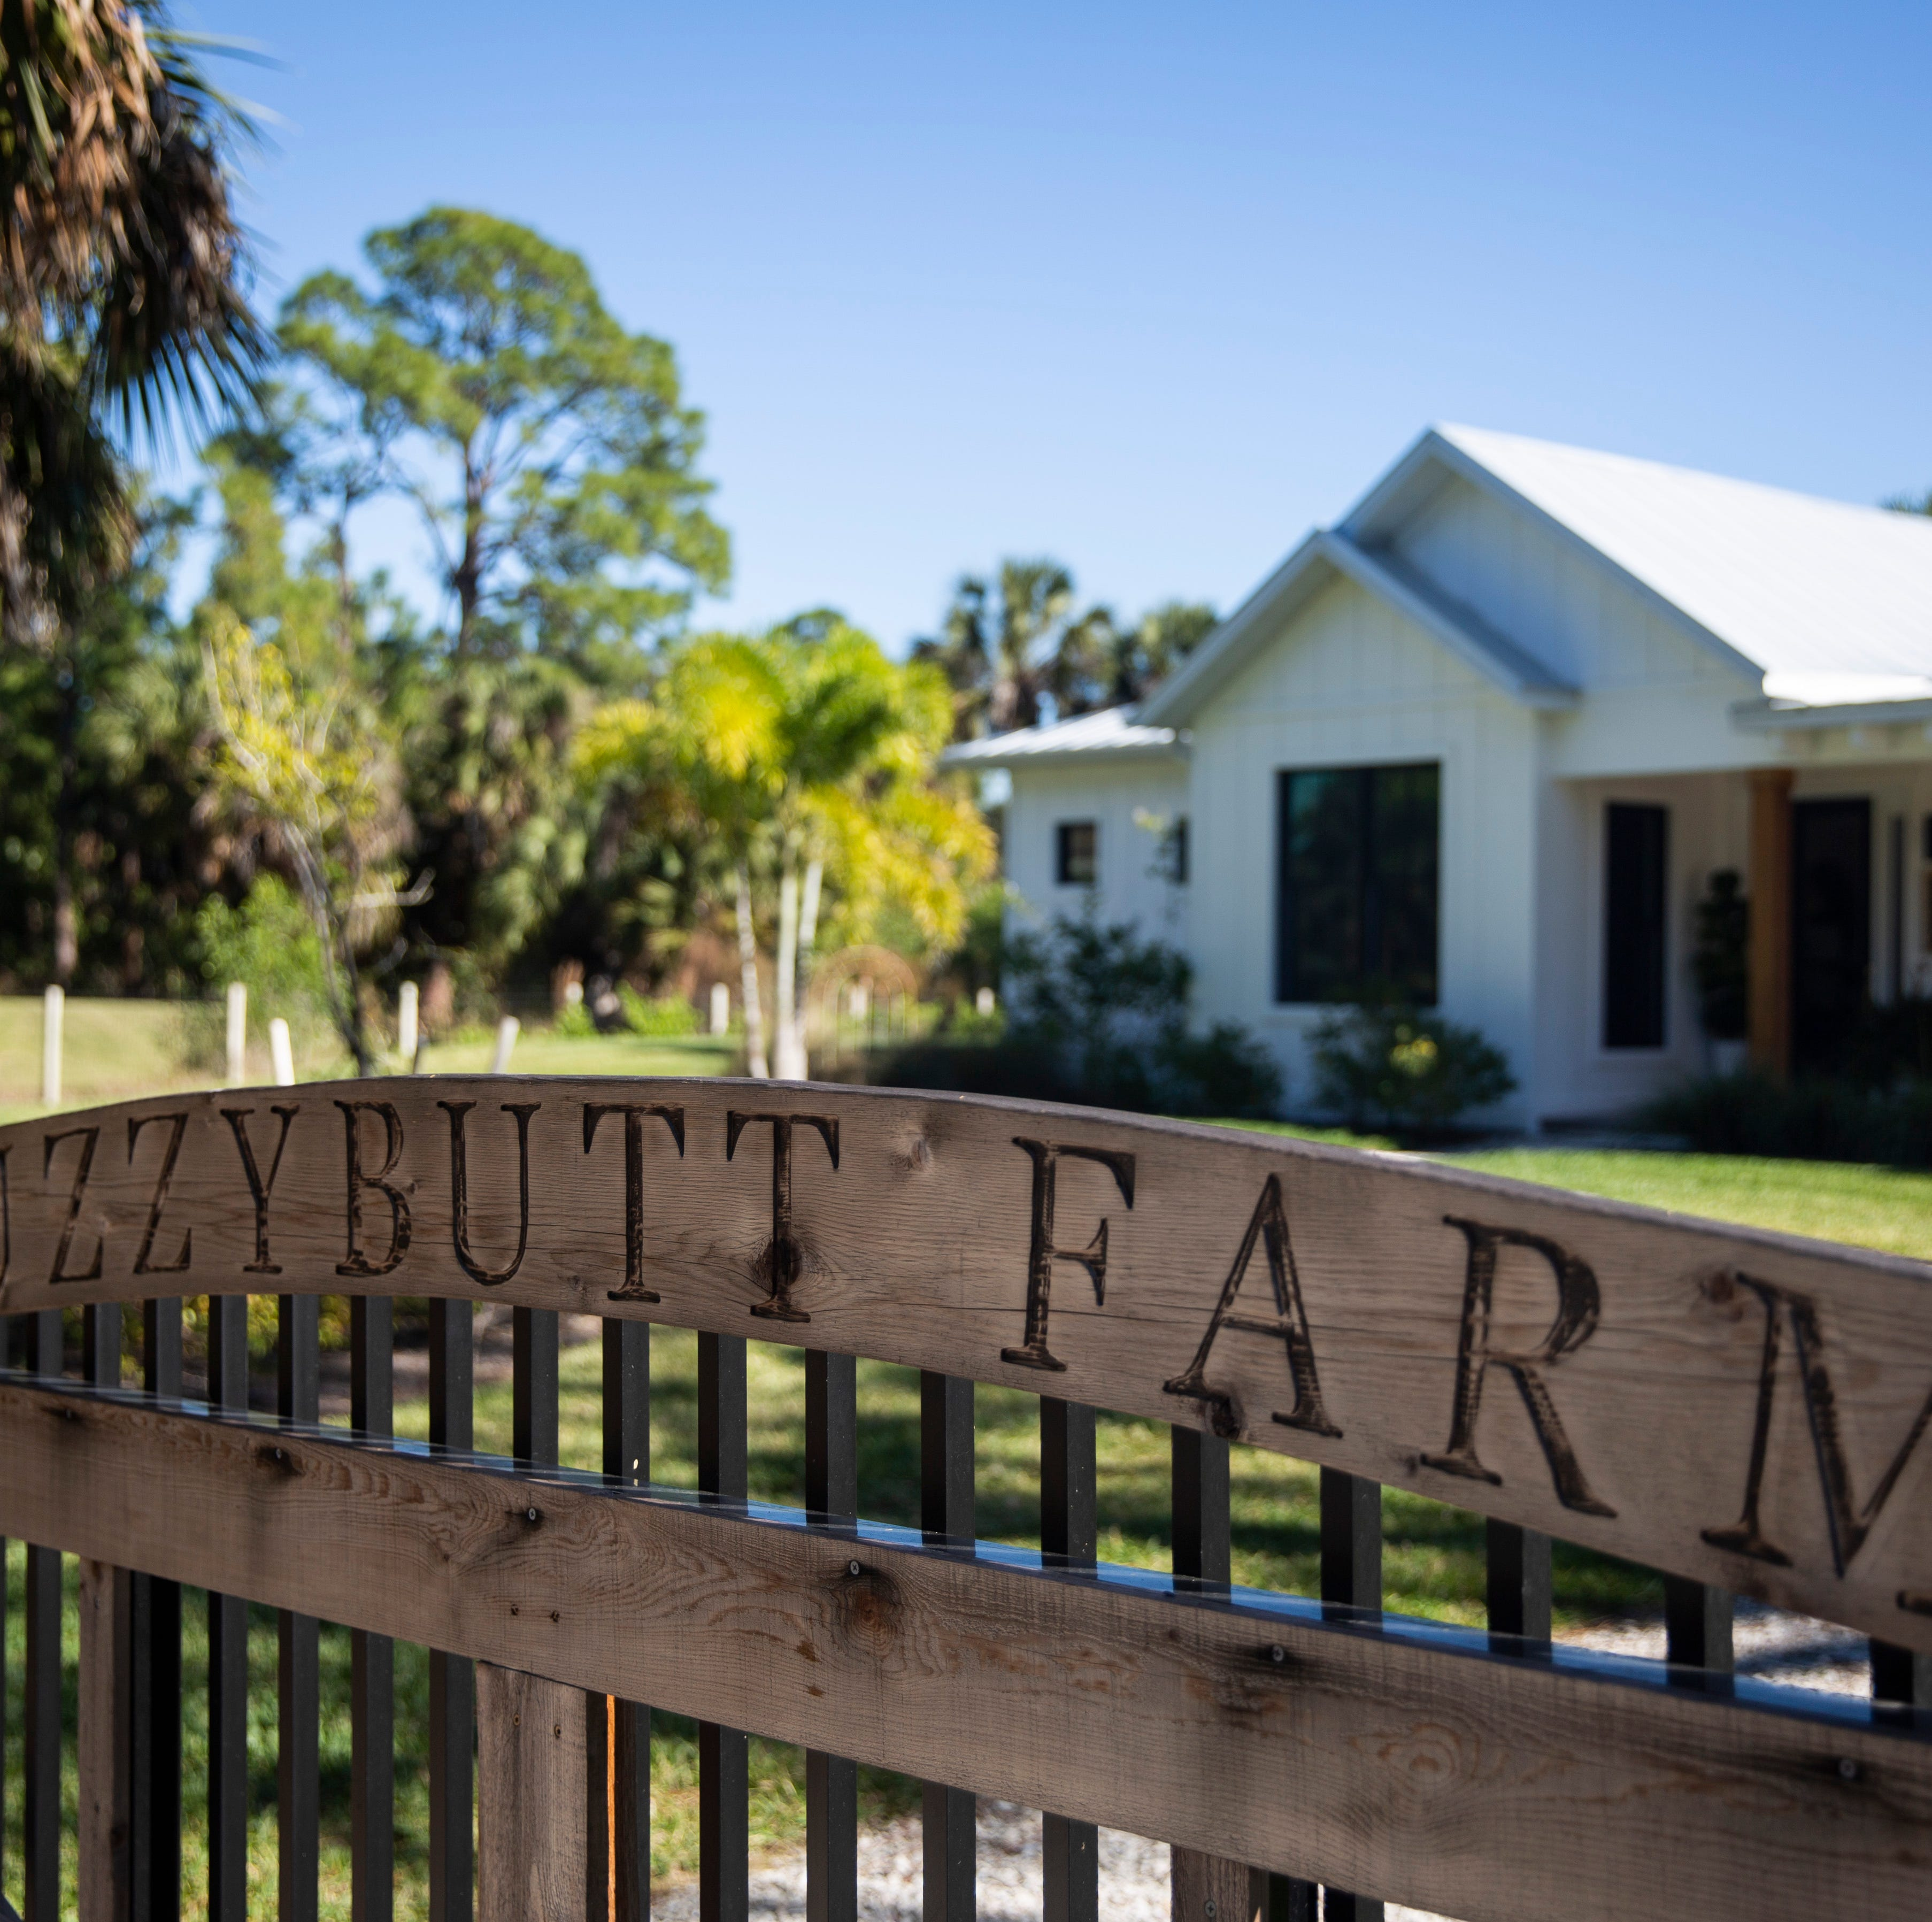 'Fuzzybutt Farm': Dream farmhouse designed by woman in East Naples